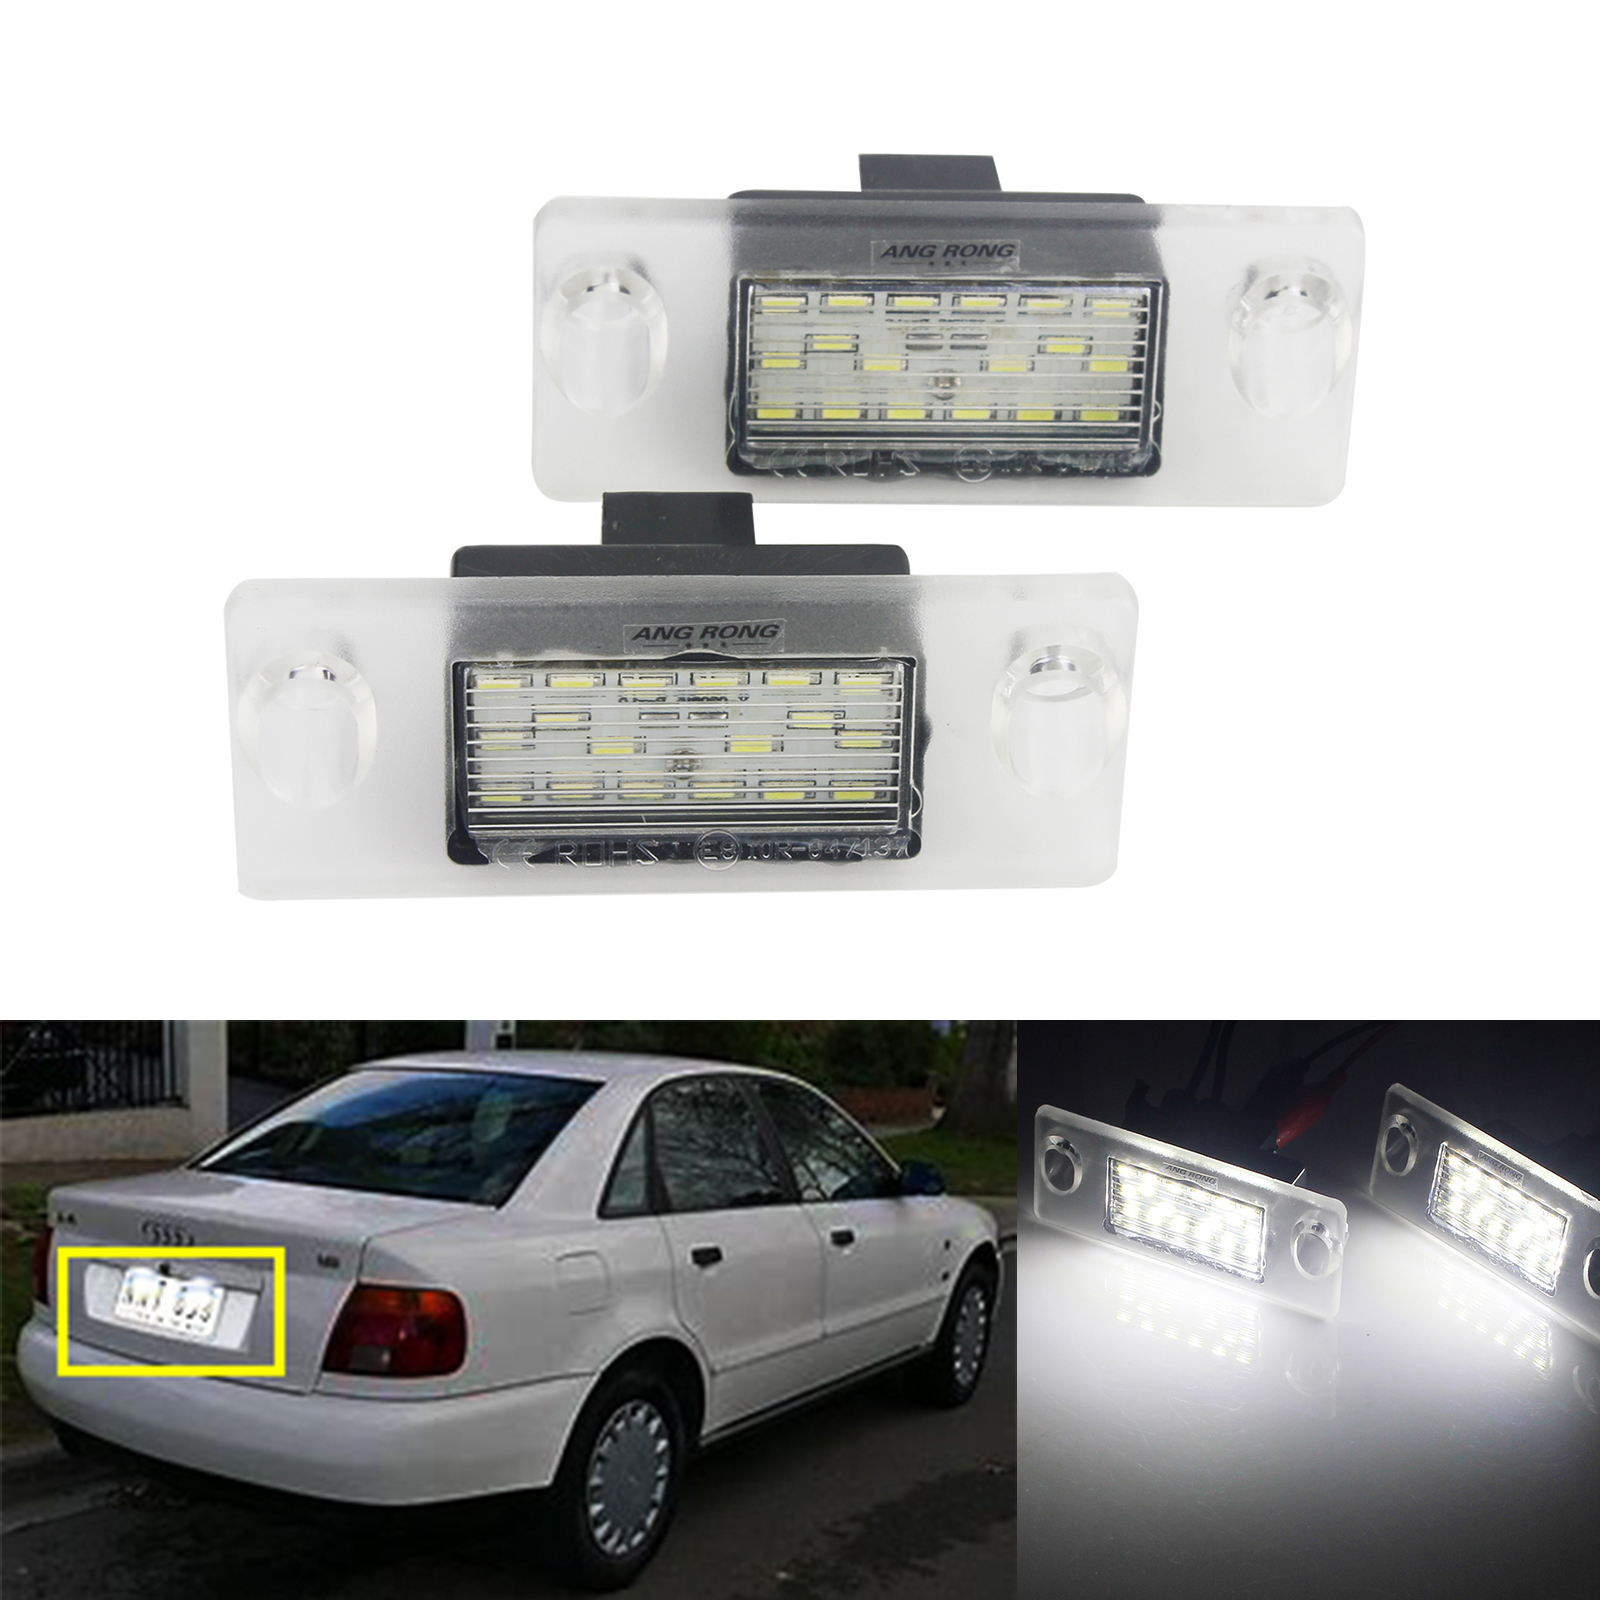 ANGRONG 2x White Canbus LED License Number Plate Light Lamps Canbus For Audi A4 B5 1995-2001